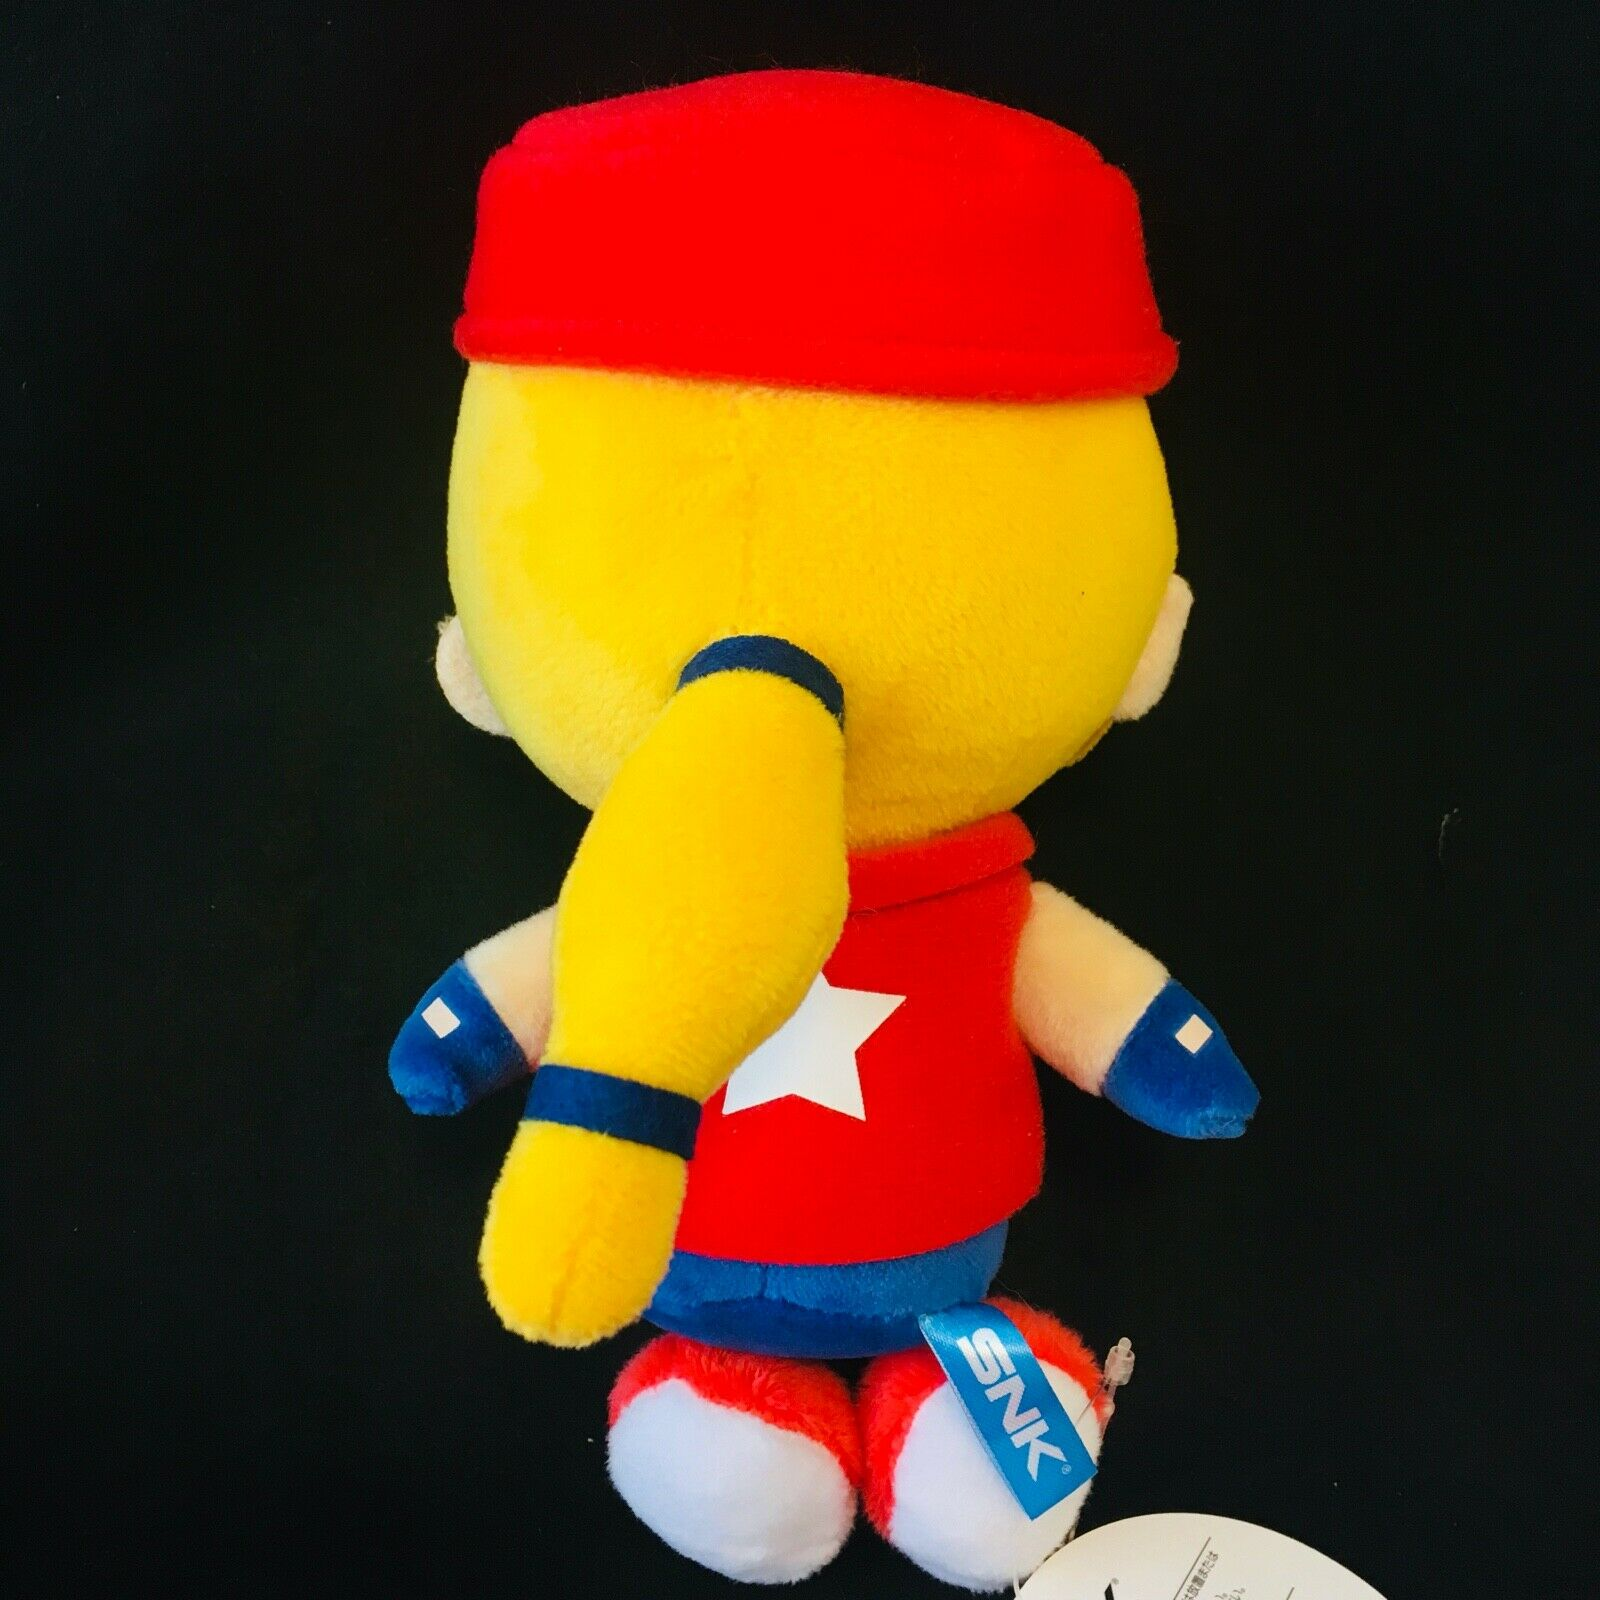 Terry Bogard The King of Fighters Plush Doll Stuffed Toy KOF SNK Fatal Fury 2019